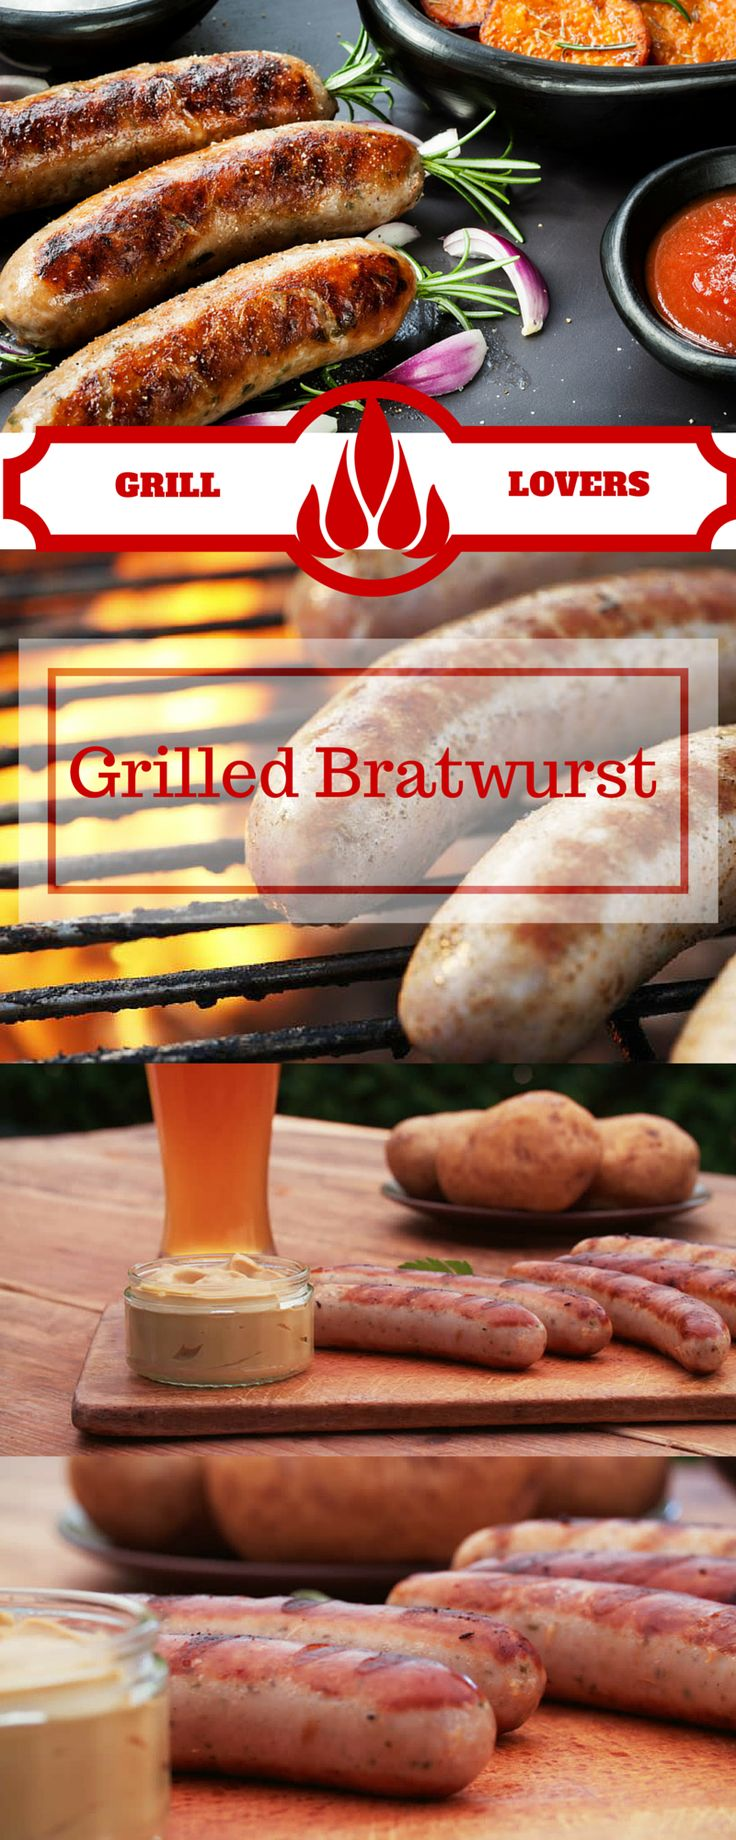 Grill Lovers' Amazing Grilled Bratwurst Recipe   #recipes #foodporn #foodie…